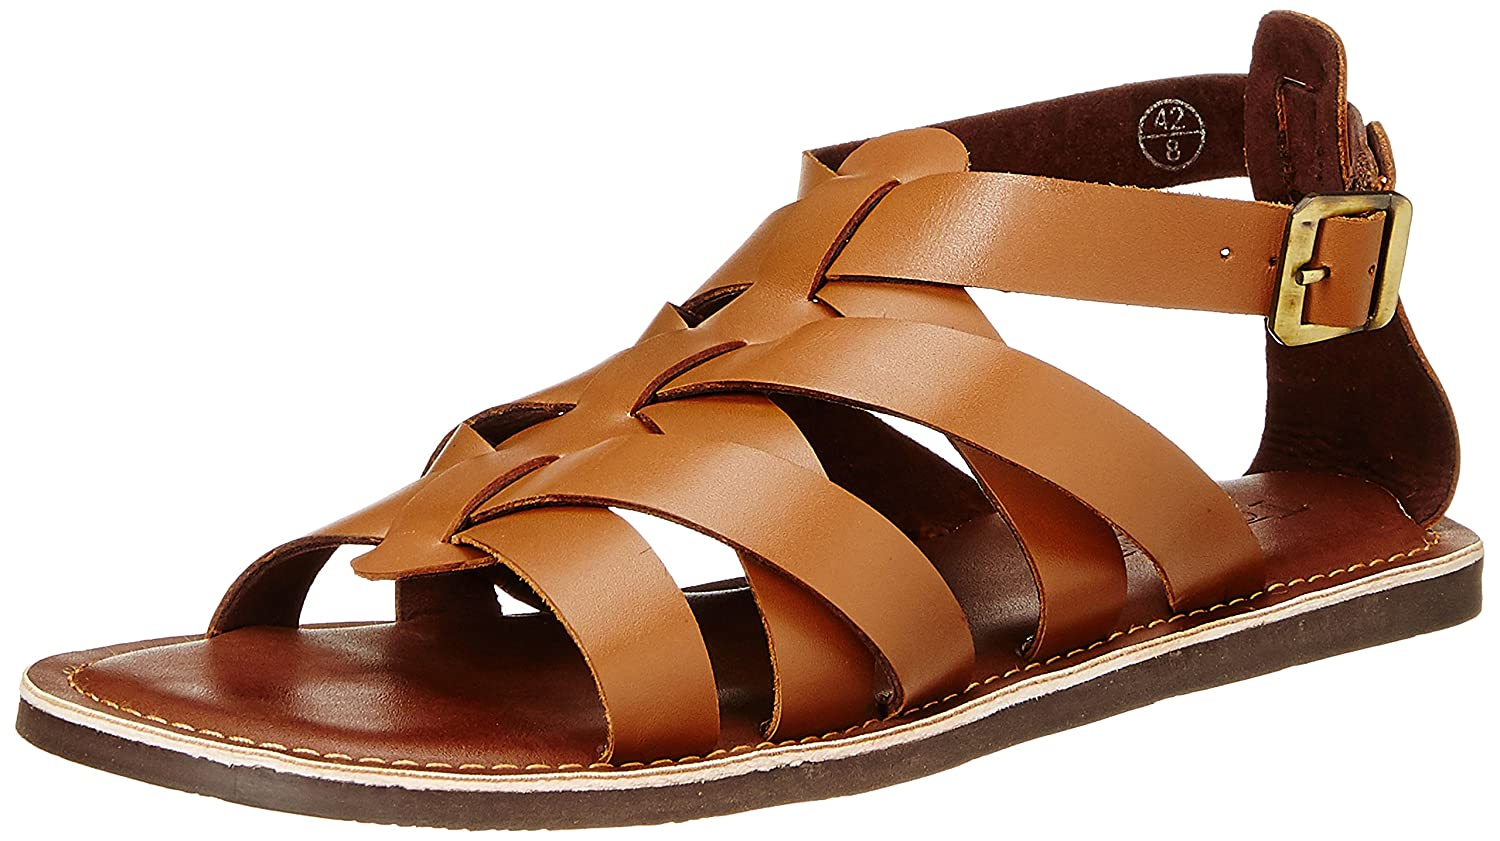 8bf429b894fe76 Tortoise Men s Tan Brown Leather Sandals and Floaters - 10 UK India (45 EU)(TORSD004TB10)   Buy Online at Low Prices in India - Amazon.in